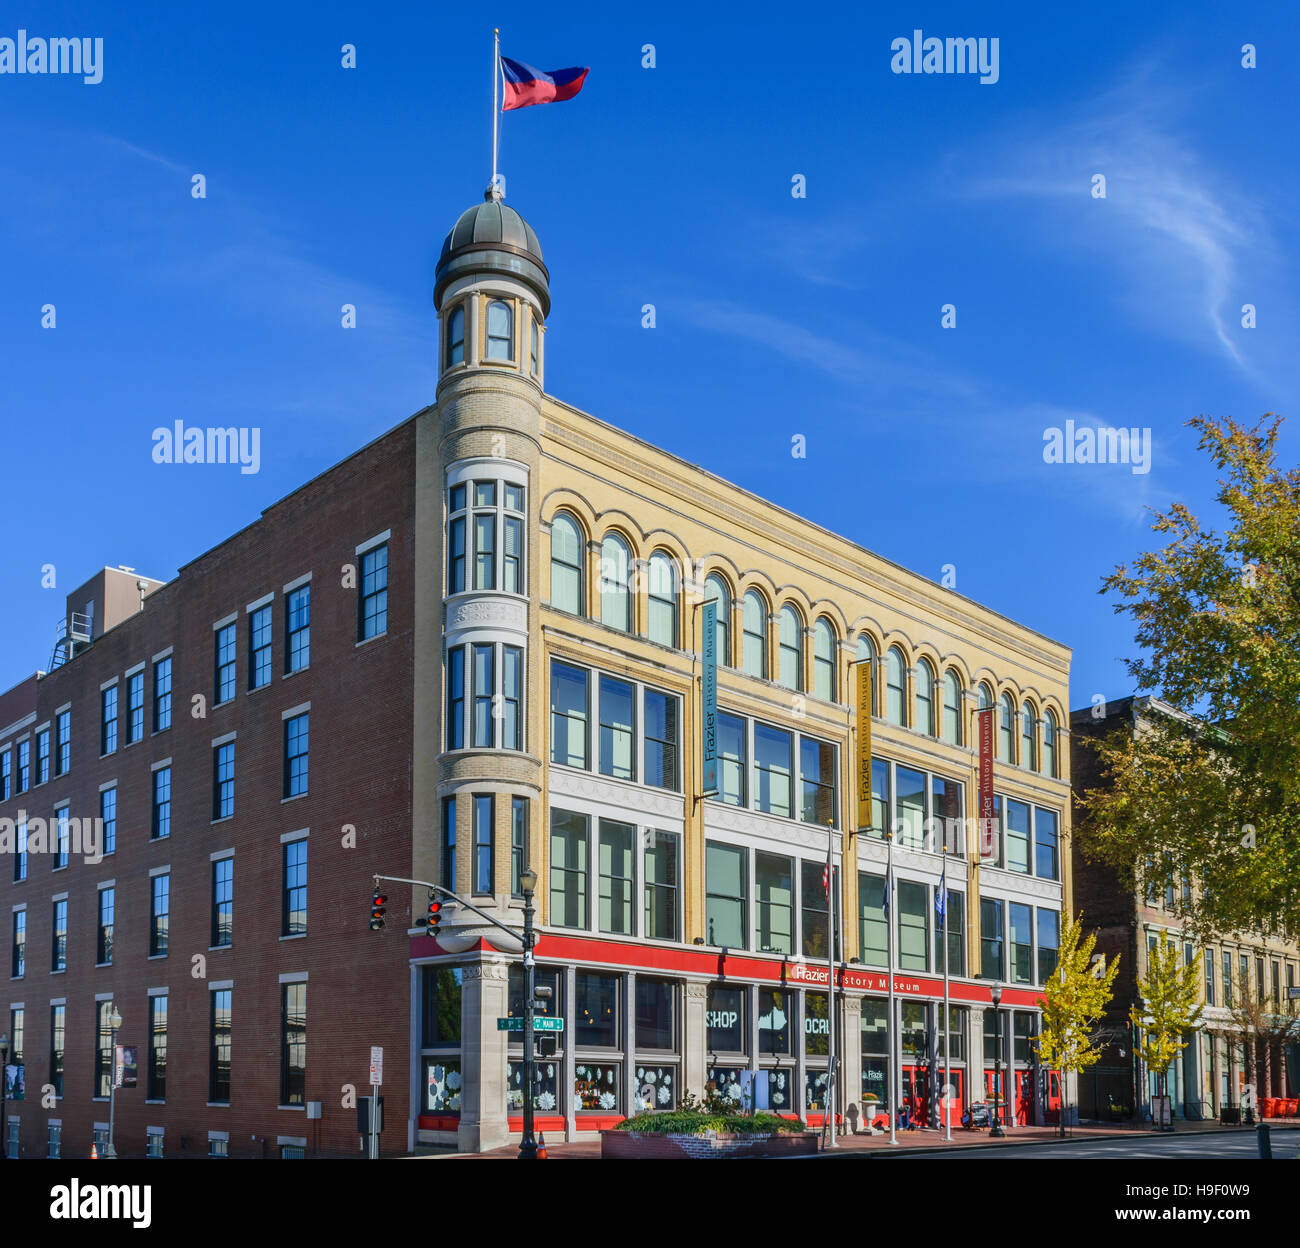 Louisville, KY, USA- Nov. 20 2016: The Frazier History Museum is located in downtown Louisville KY. The museum has - Stock Image